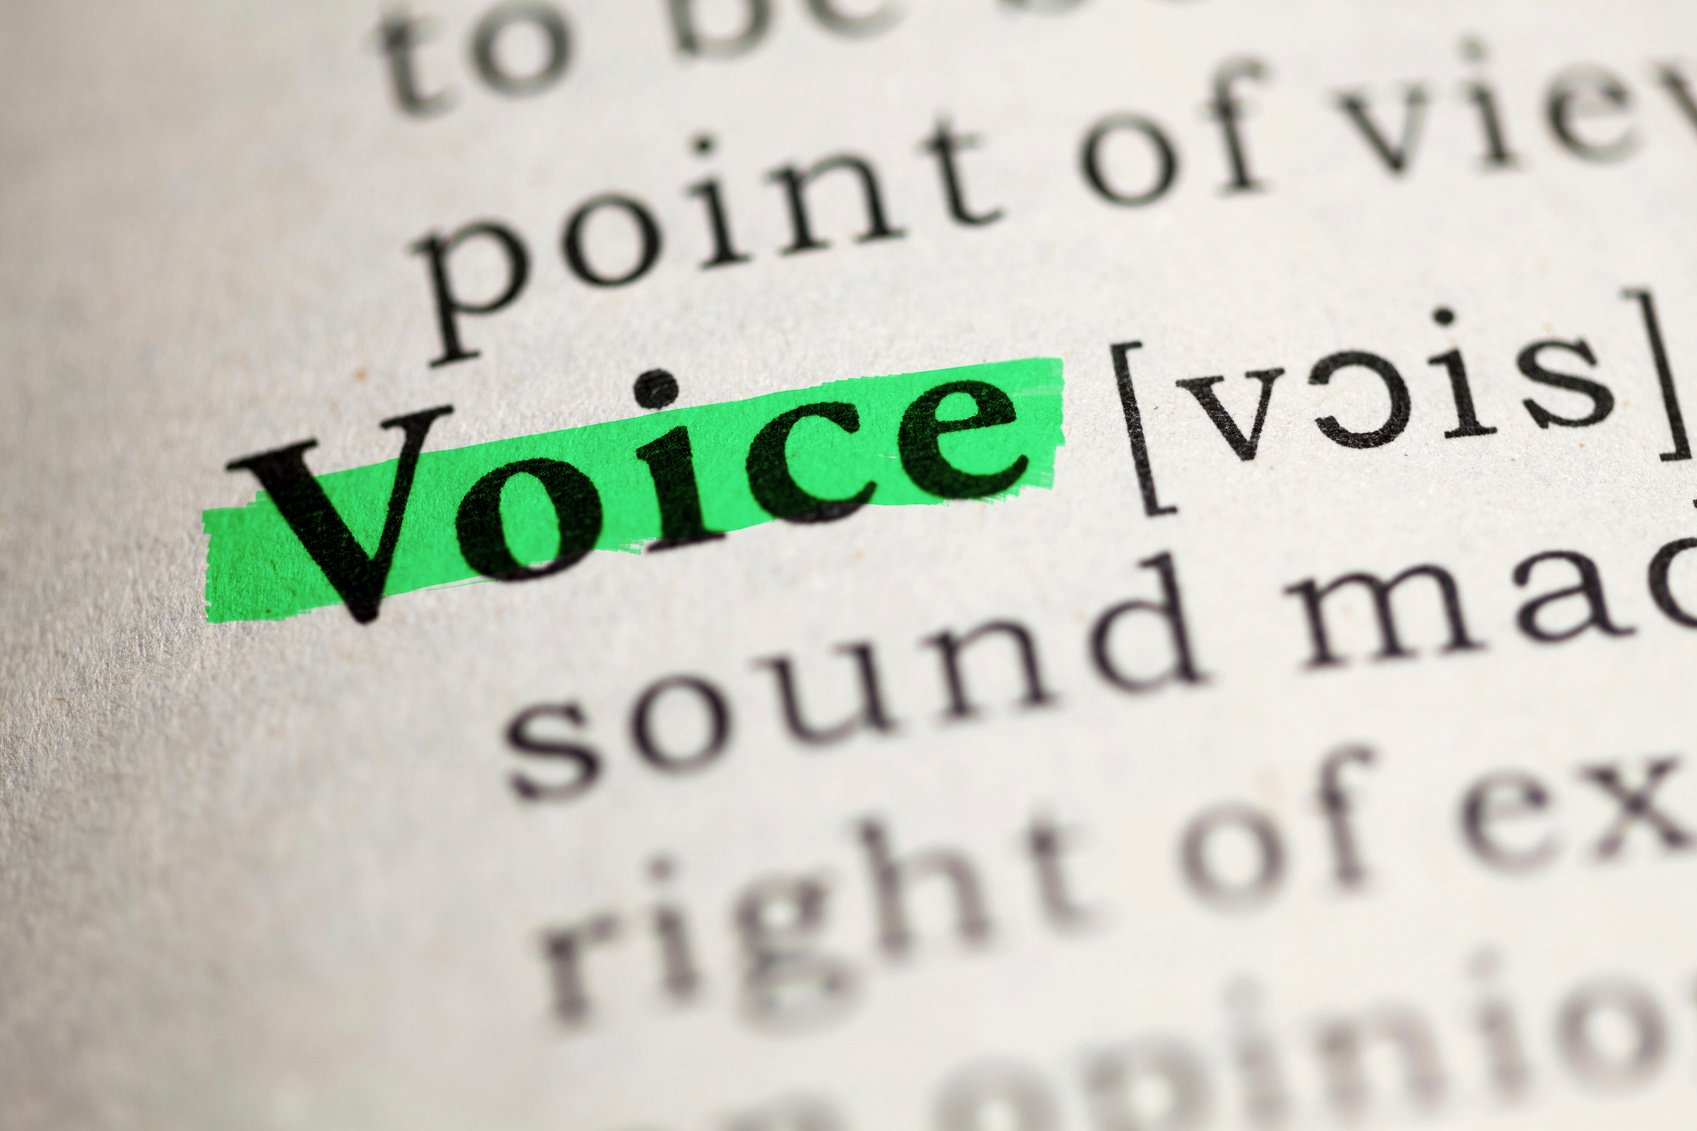 Definition of voice